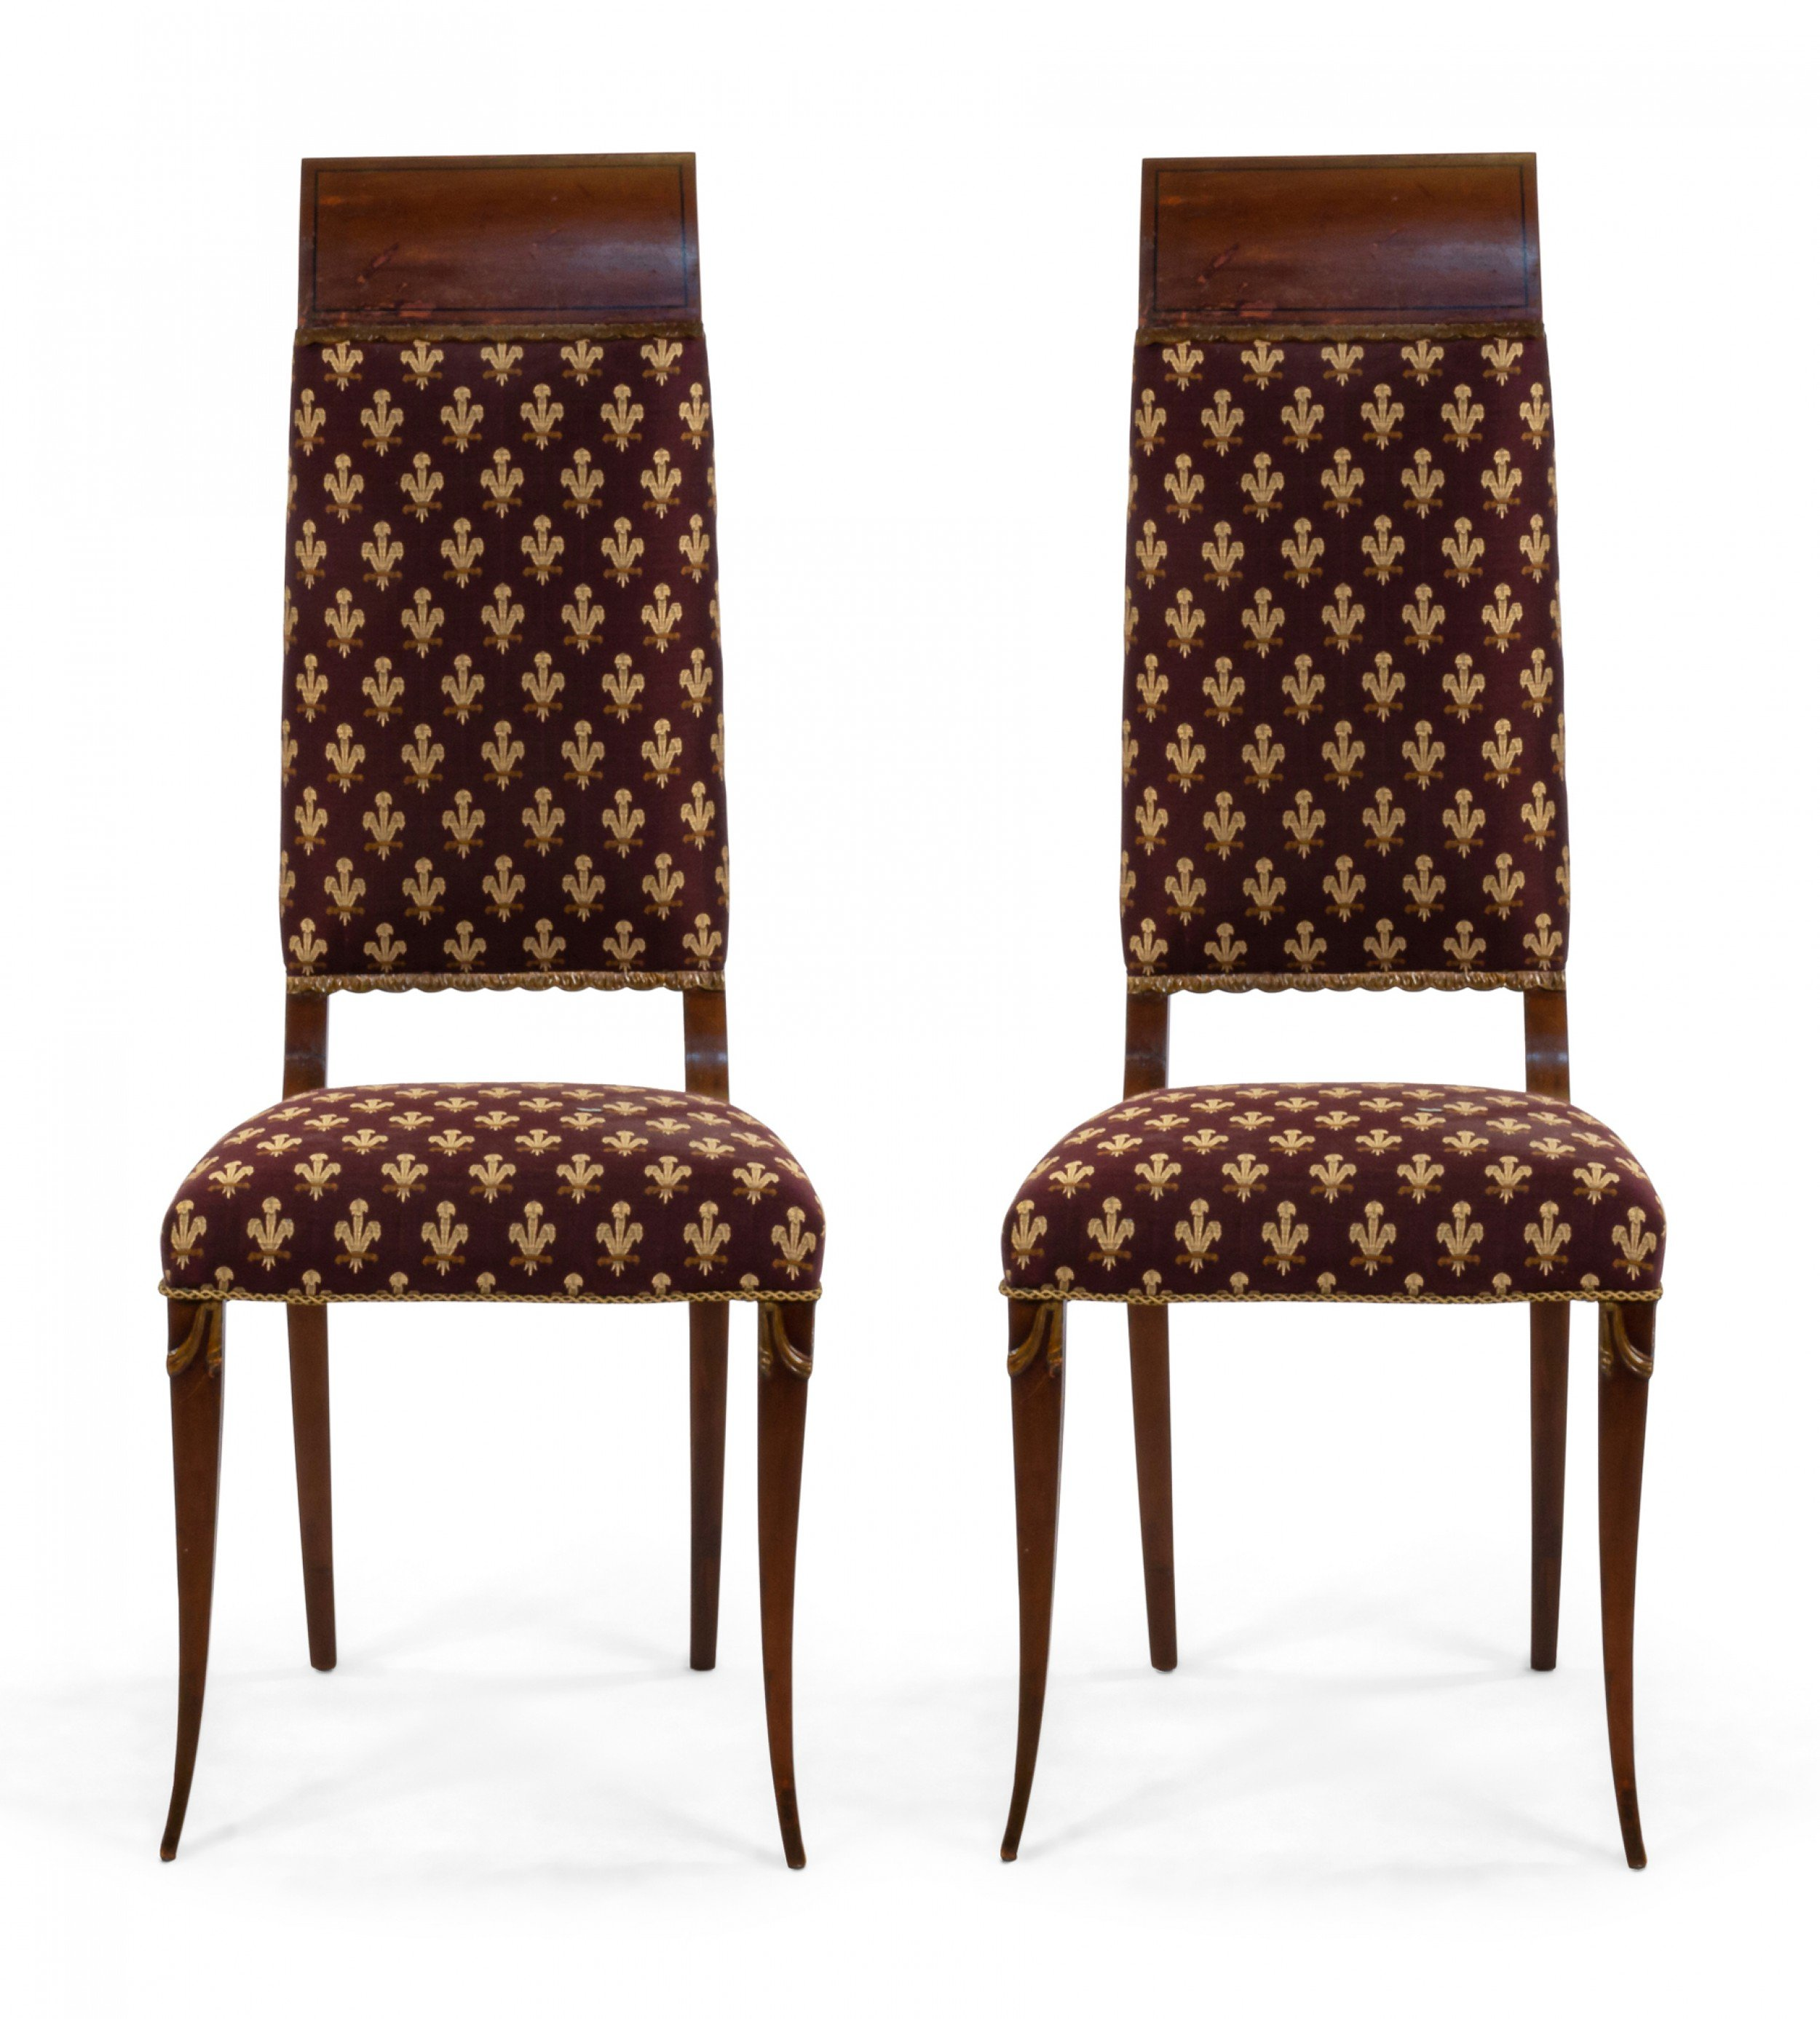 English Edwardian High Back Chairs with Maroon Upholstery